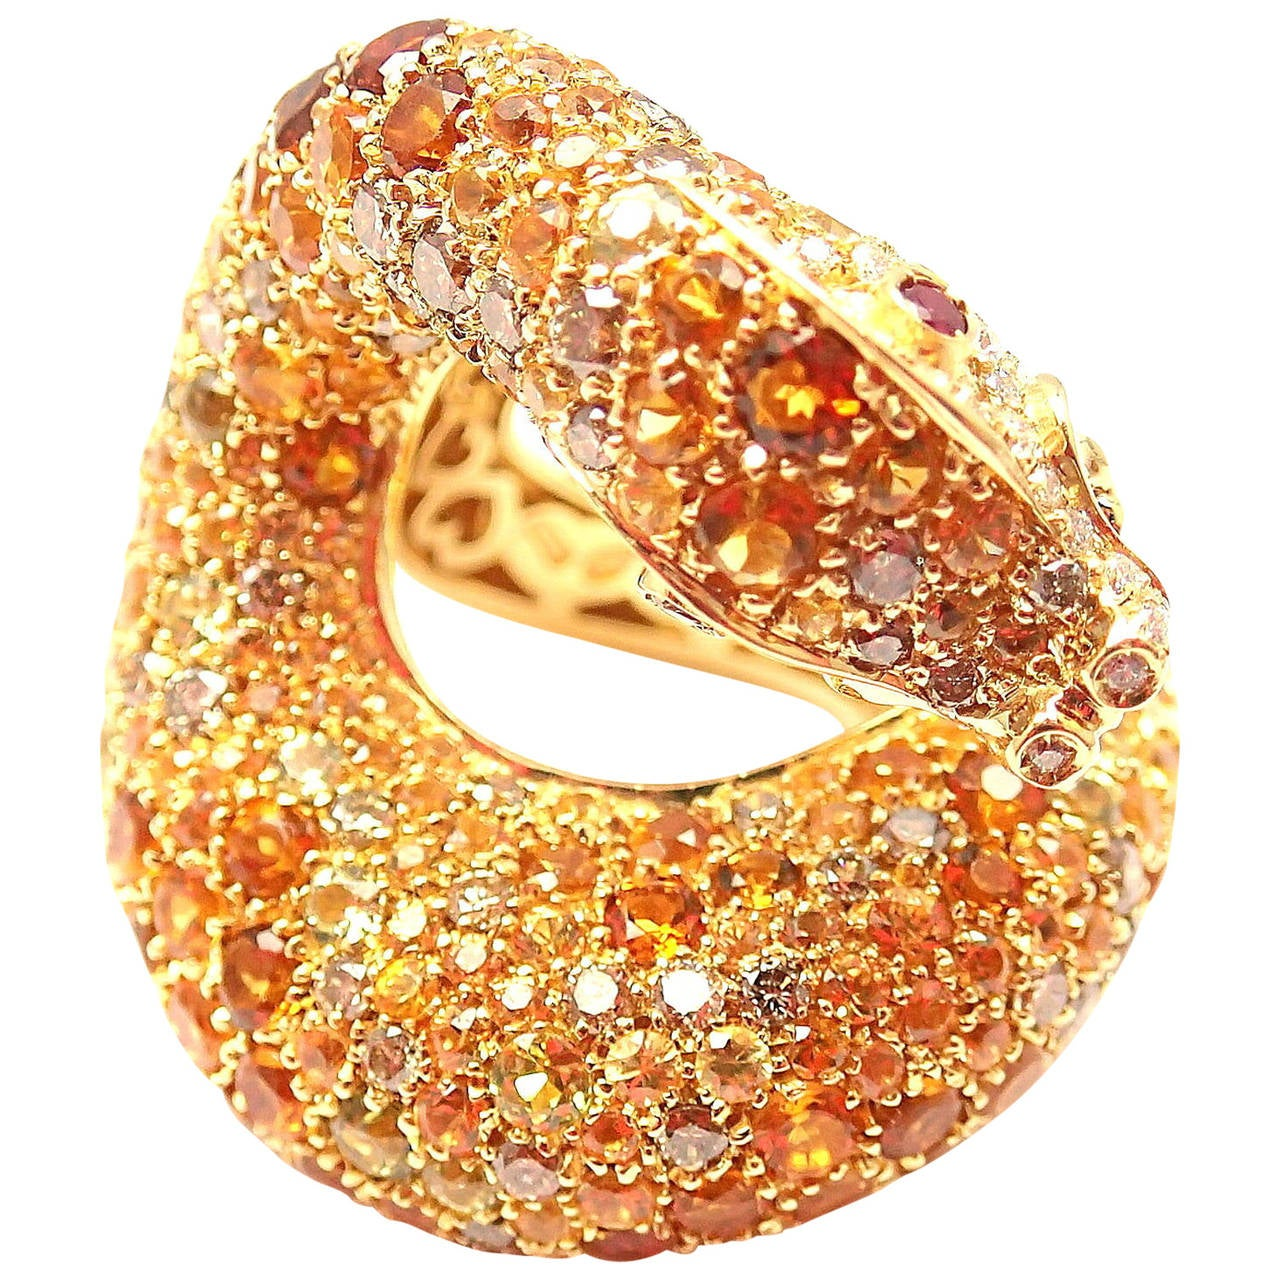 Pasquale Bruni Il Peccato Large Sapphire Ruby Diamond Gold Snake Ring